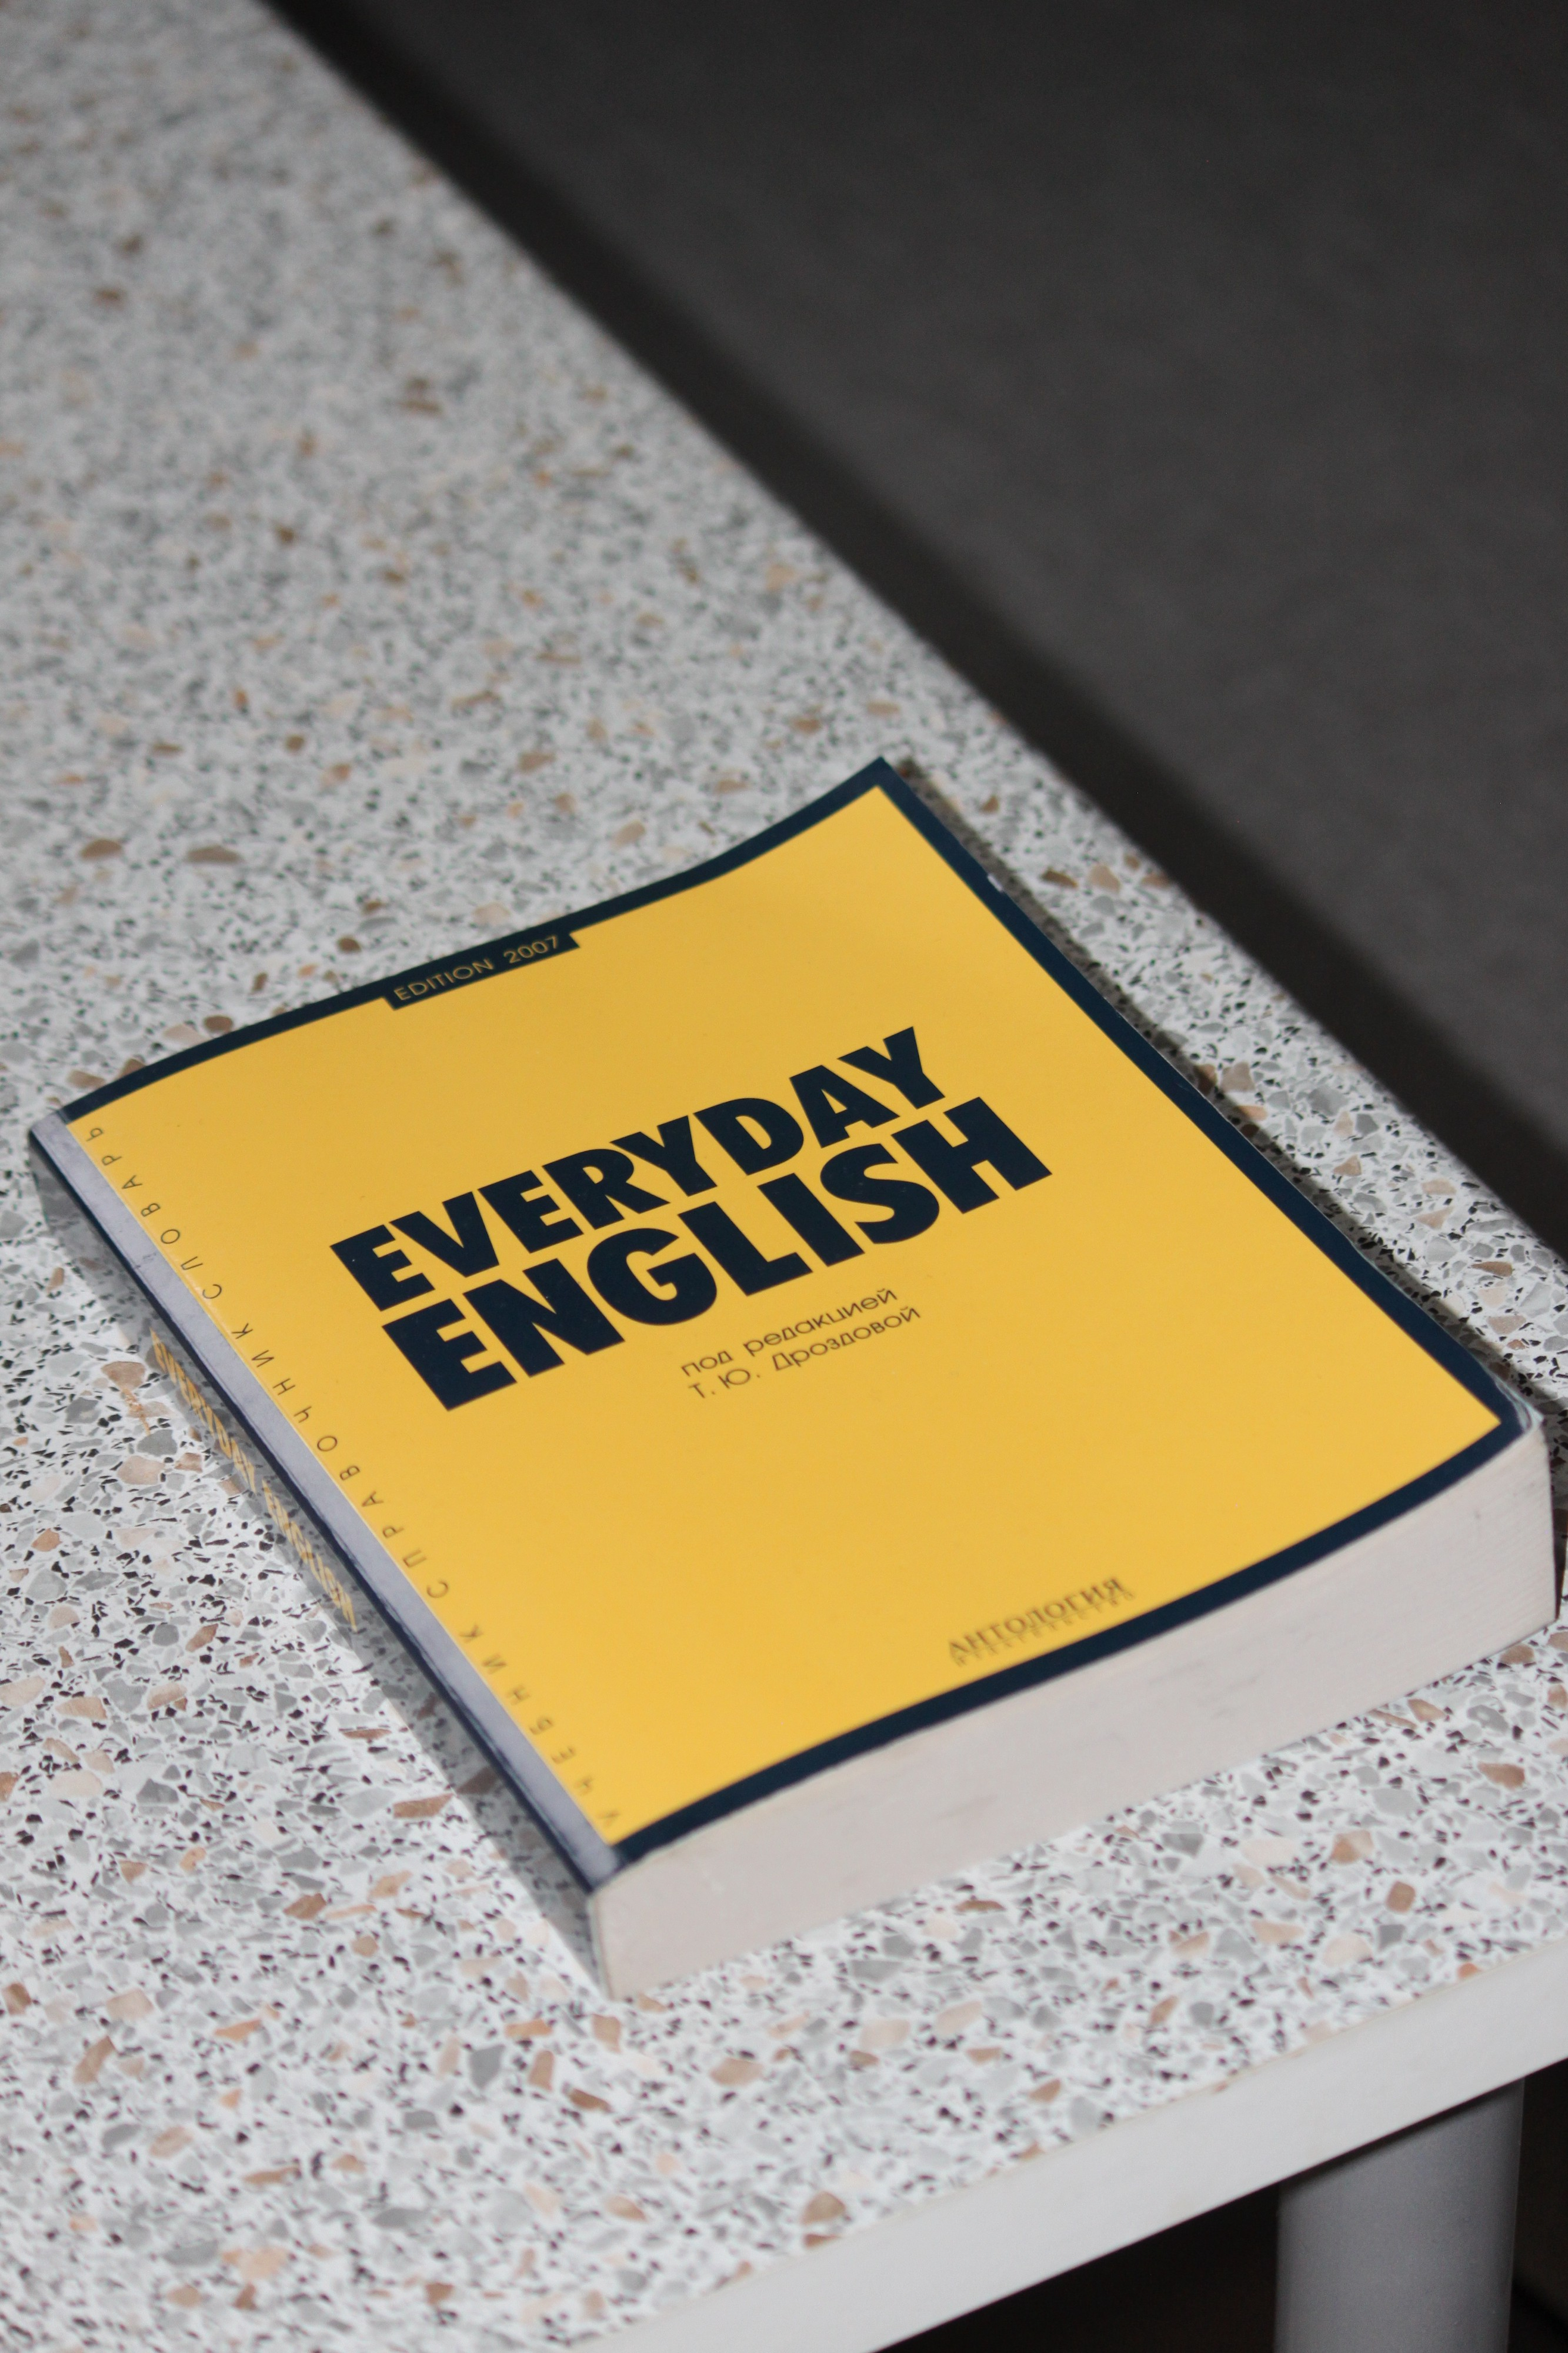 """Image of a yellow book titled, """"Everyday English"""" on top of a table."""